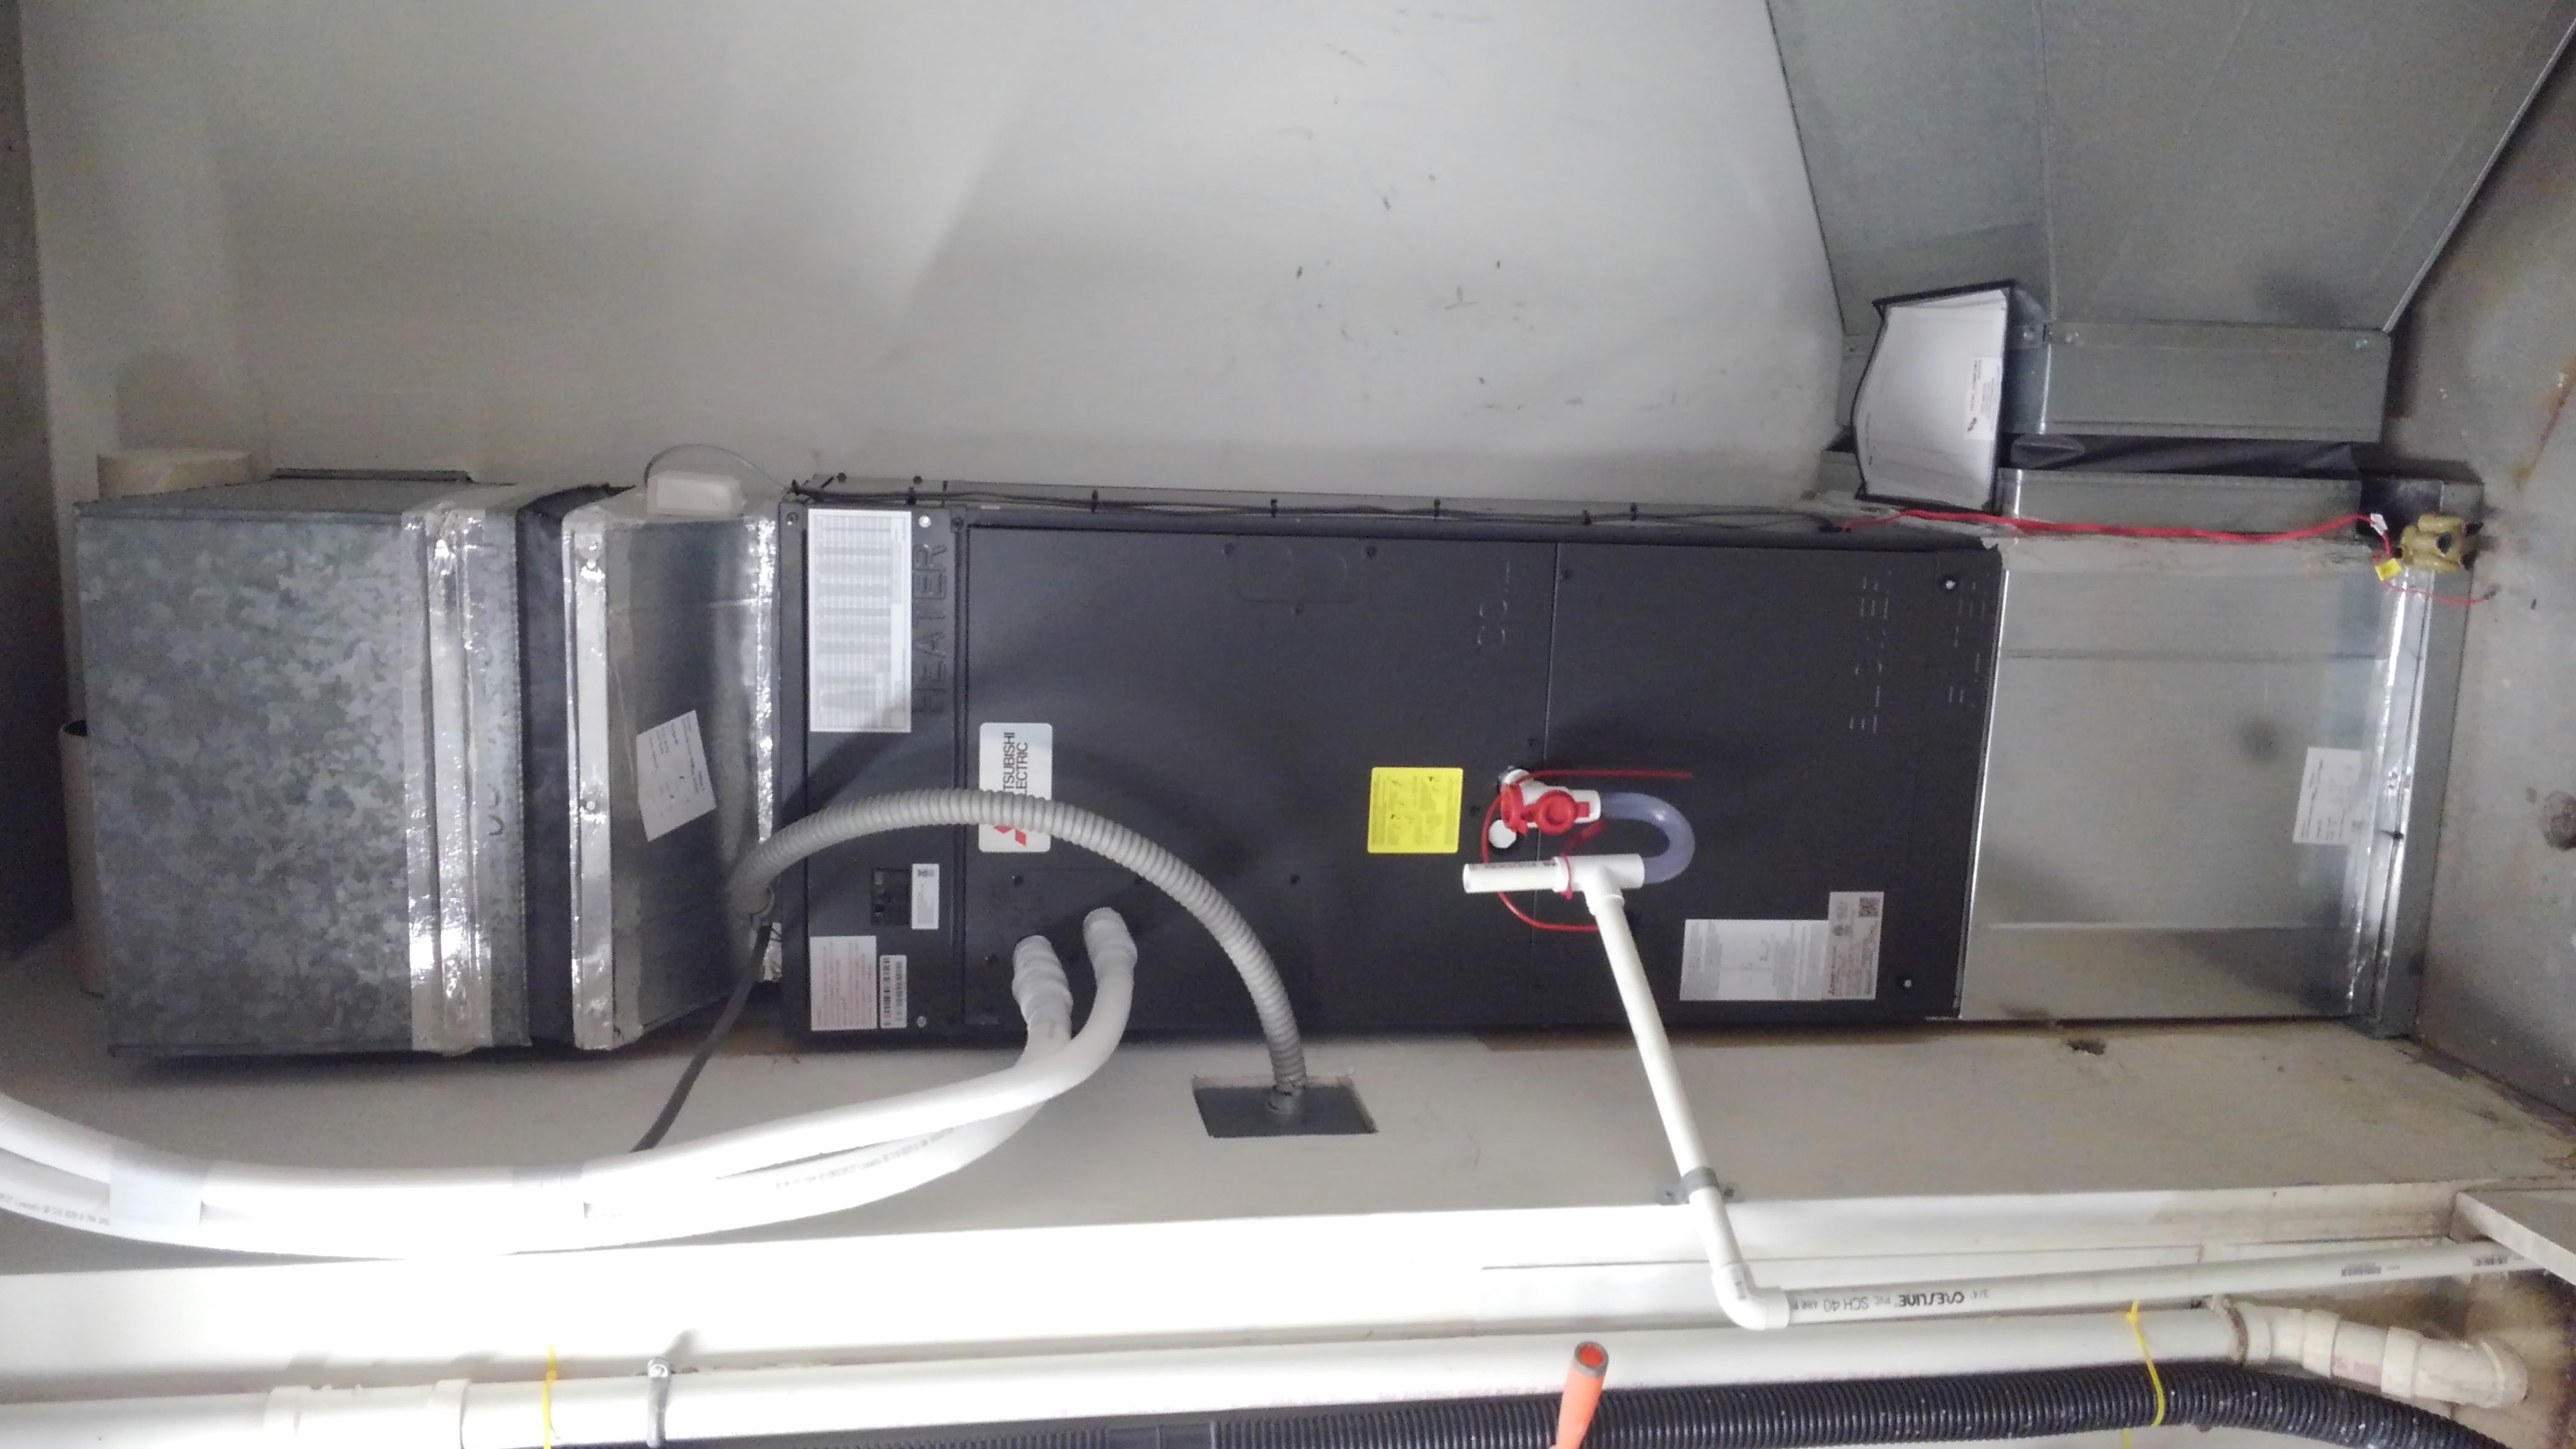 Mitsubishi ducted heat pump